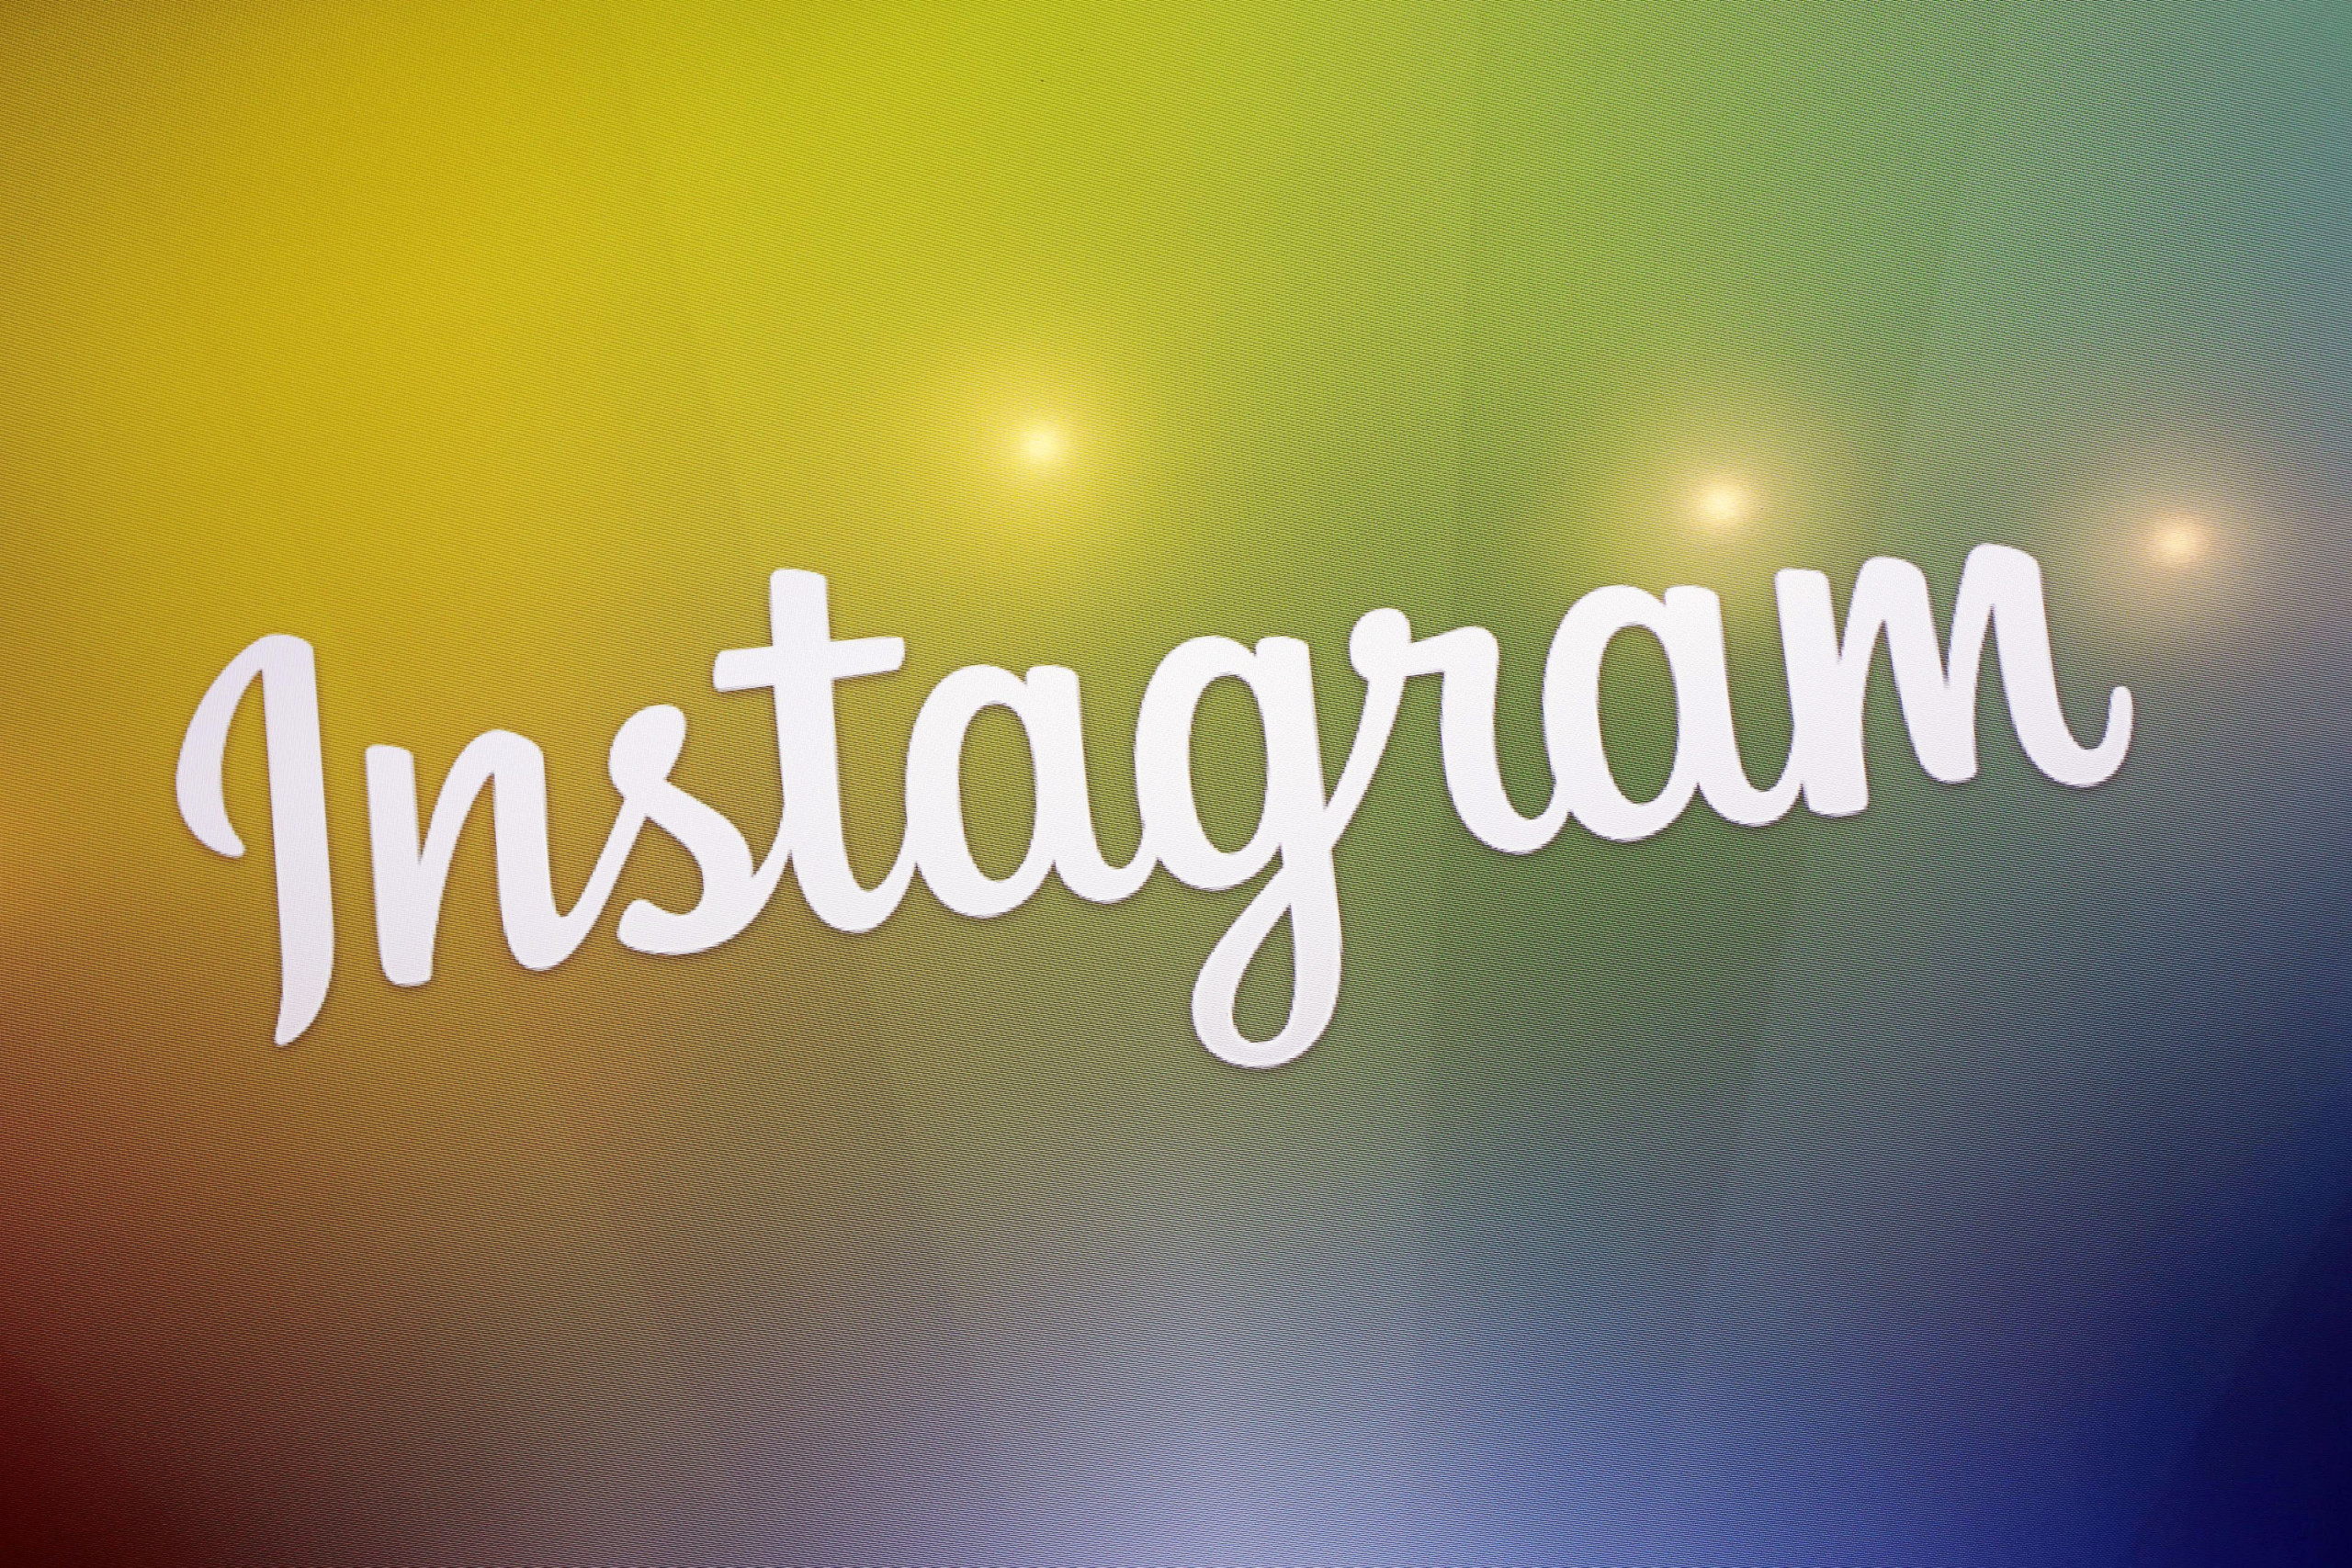 The Instagram logo is displayed on an electronic screen at a news conference, Thursday, Dec. 12, 2013 in New York for the introduction of Instagram Direct. (AP Photo/Mark Lennihan)